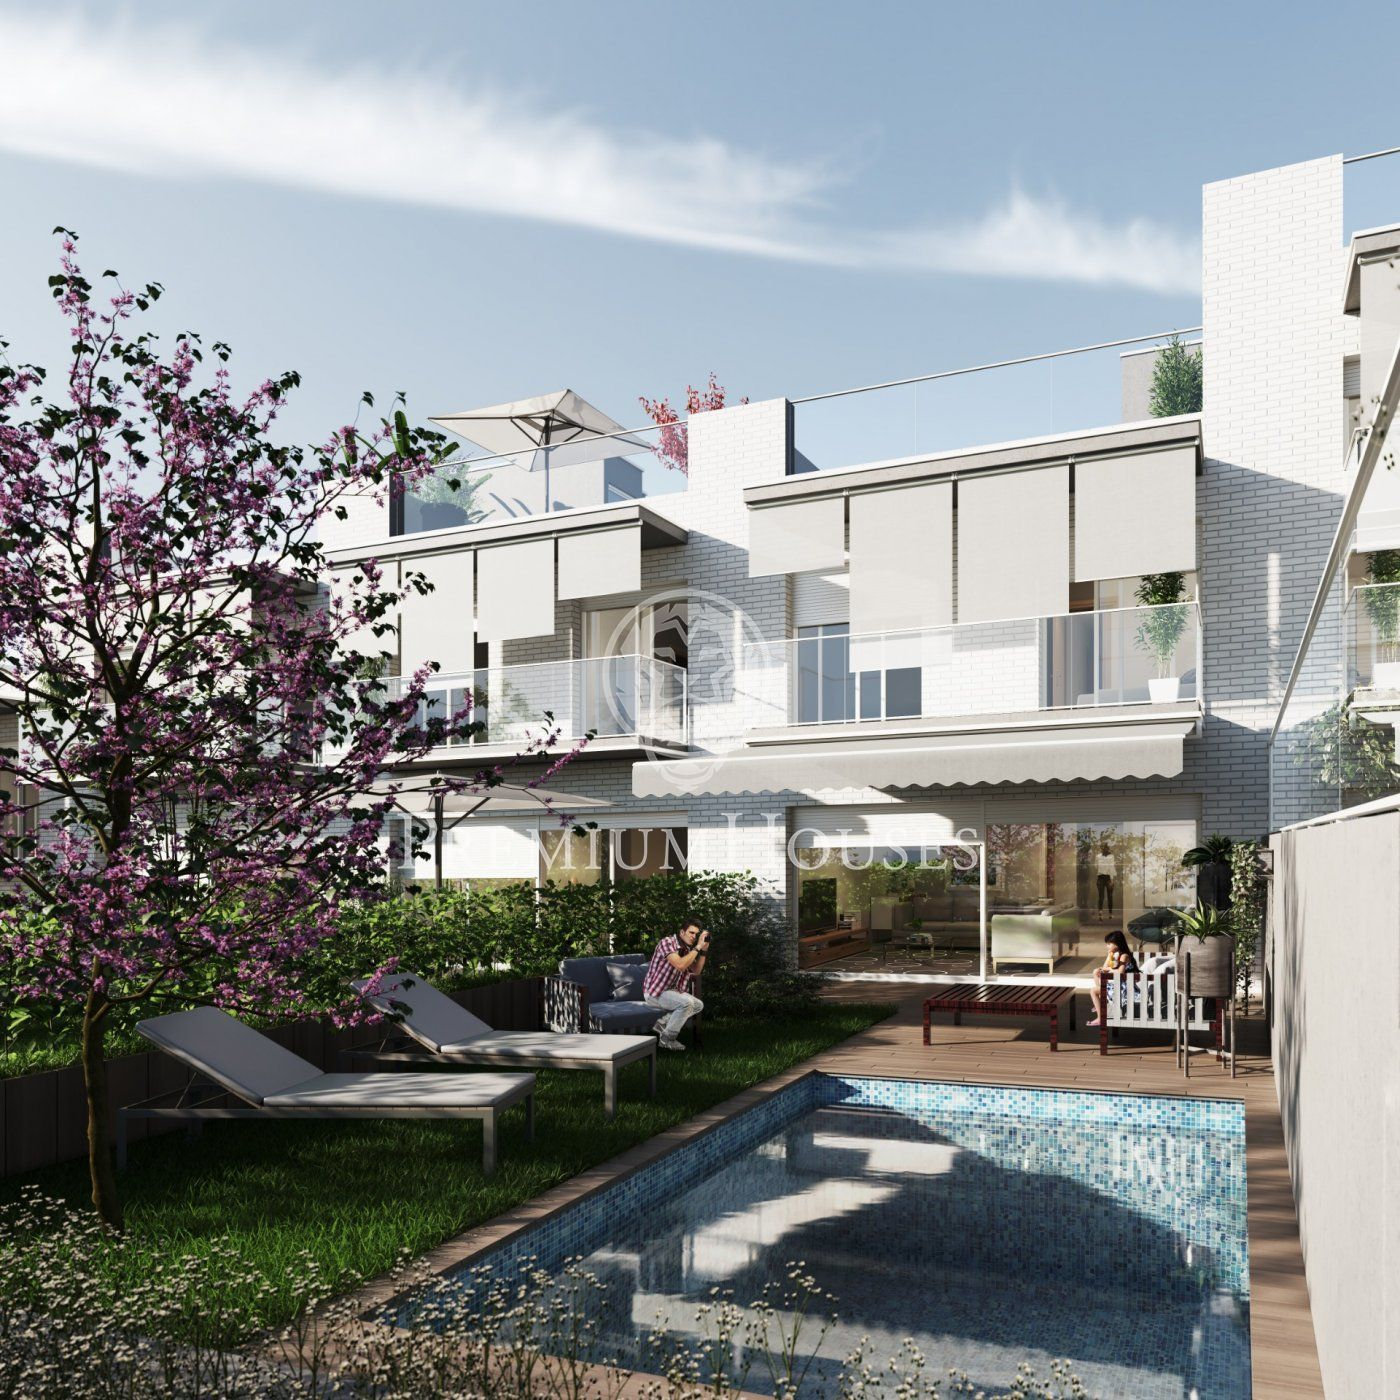 NEW BUILDING! A new project of detached houses for sale in Sitges